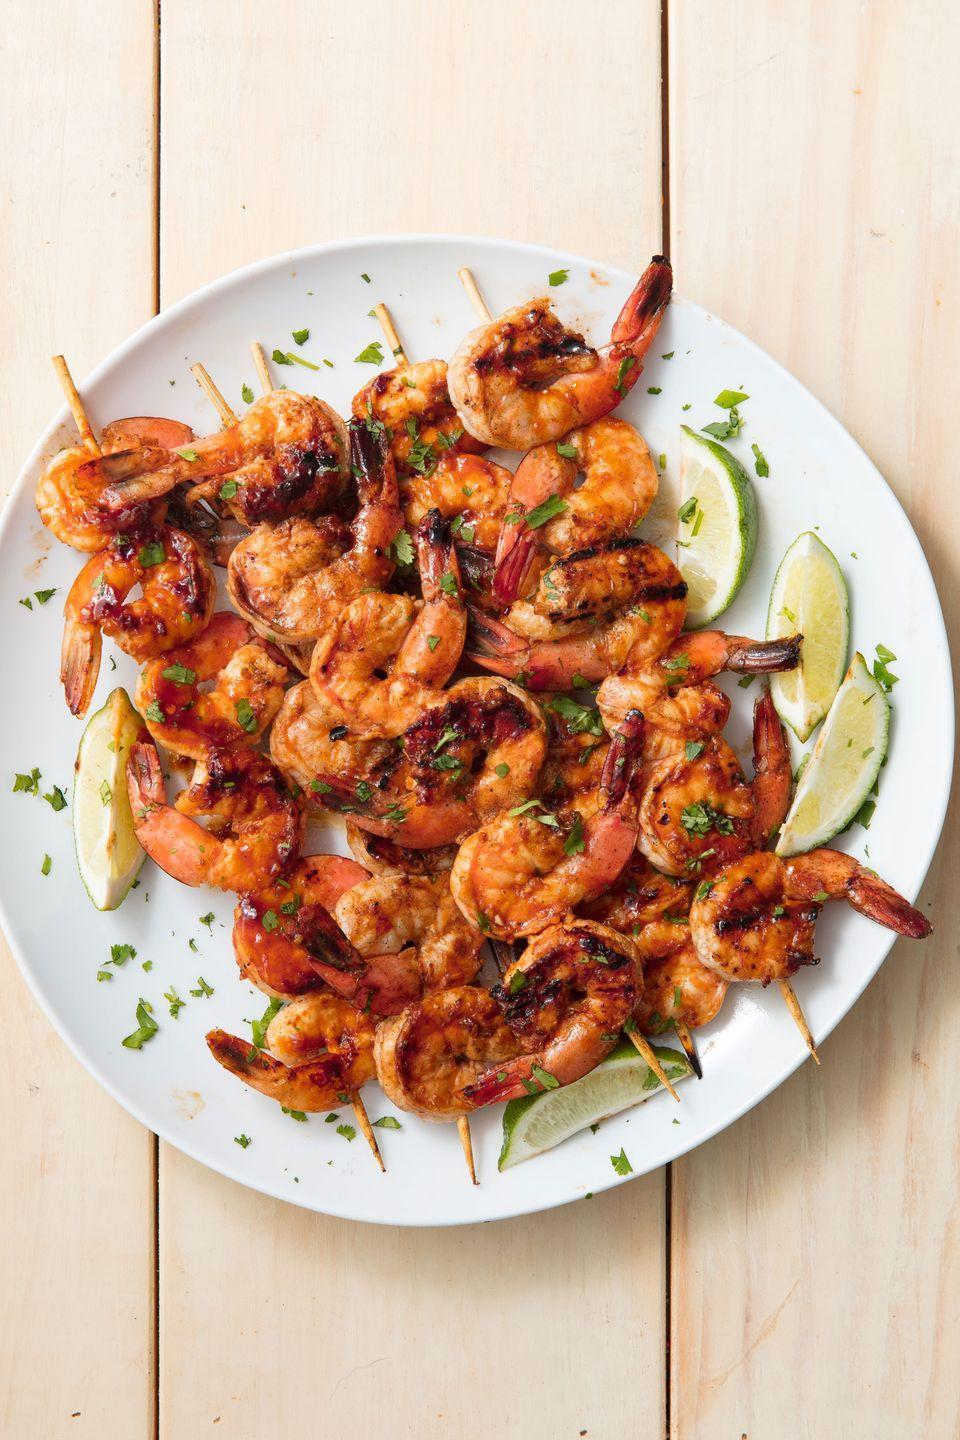 """<p>Meet your new favorite dinner. EVER.</p><p>Get the recipe from <a href=""""https://www.delish.com/cooking/recipe-ideas/a20079268/best-grilled-shrimp-recipe/"""" rel=""""nofollow noopener"""" target=""""_blank"""" data-ylk=""""slk:Delish"""" class=""""link rapid-noclick-resp"""">Delish</a>.</p>"""